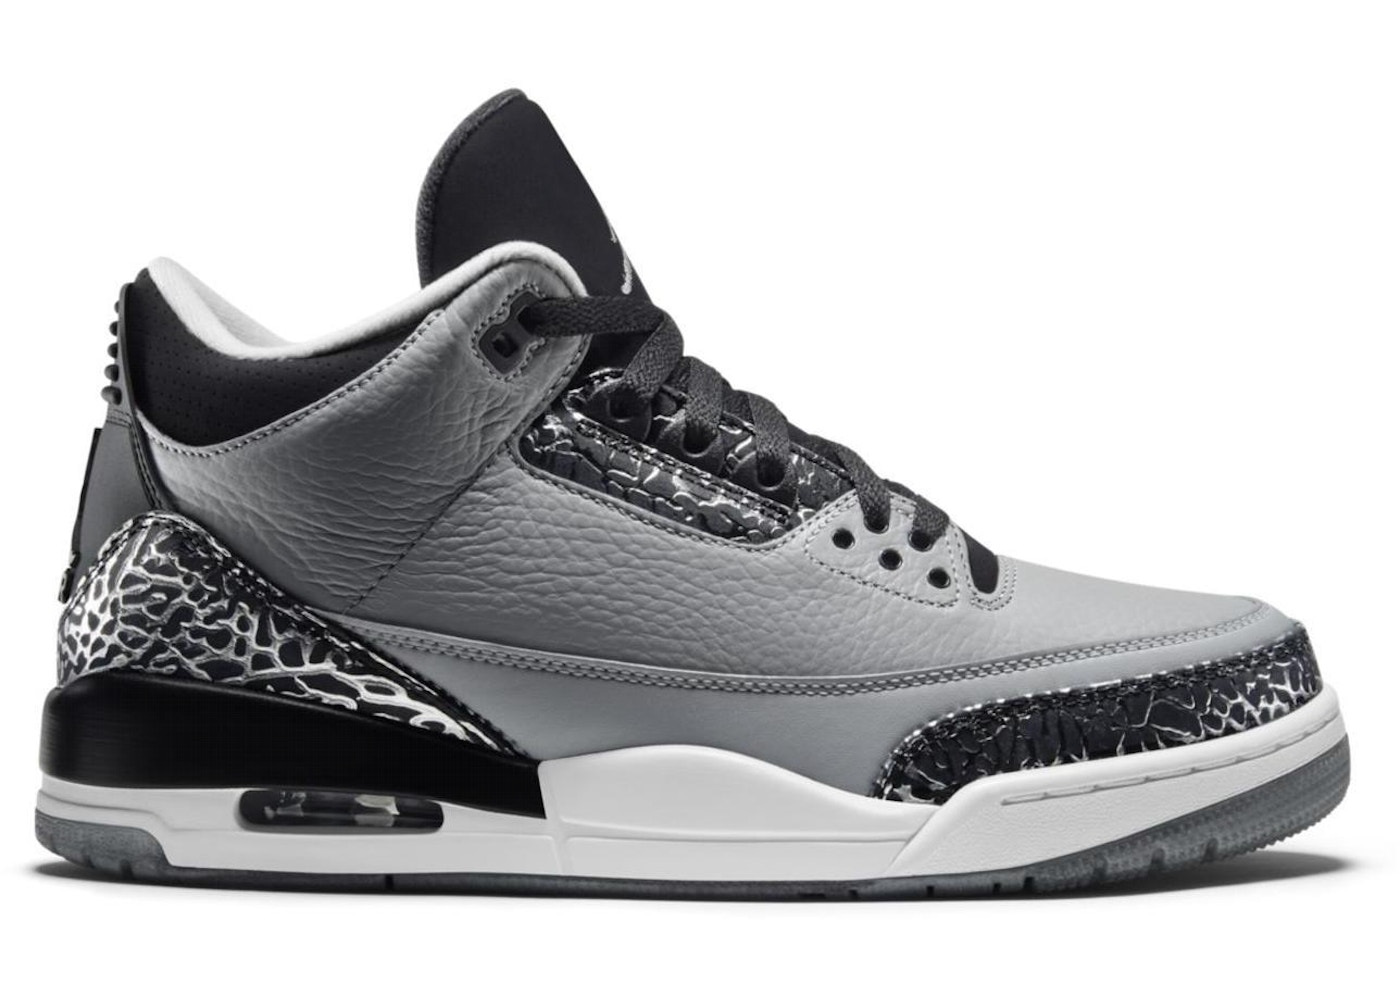 competitive price cee77 17bda Buy Air Jordan 3 Size 18 Shoes & Deadstock Sneakers